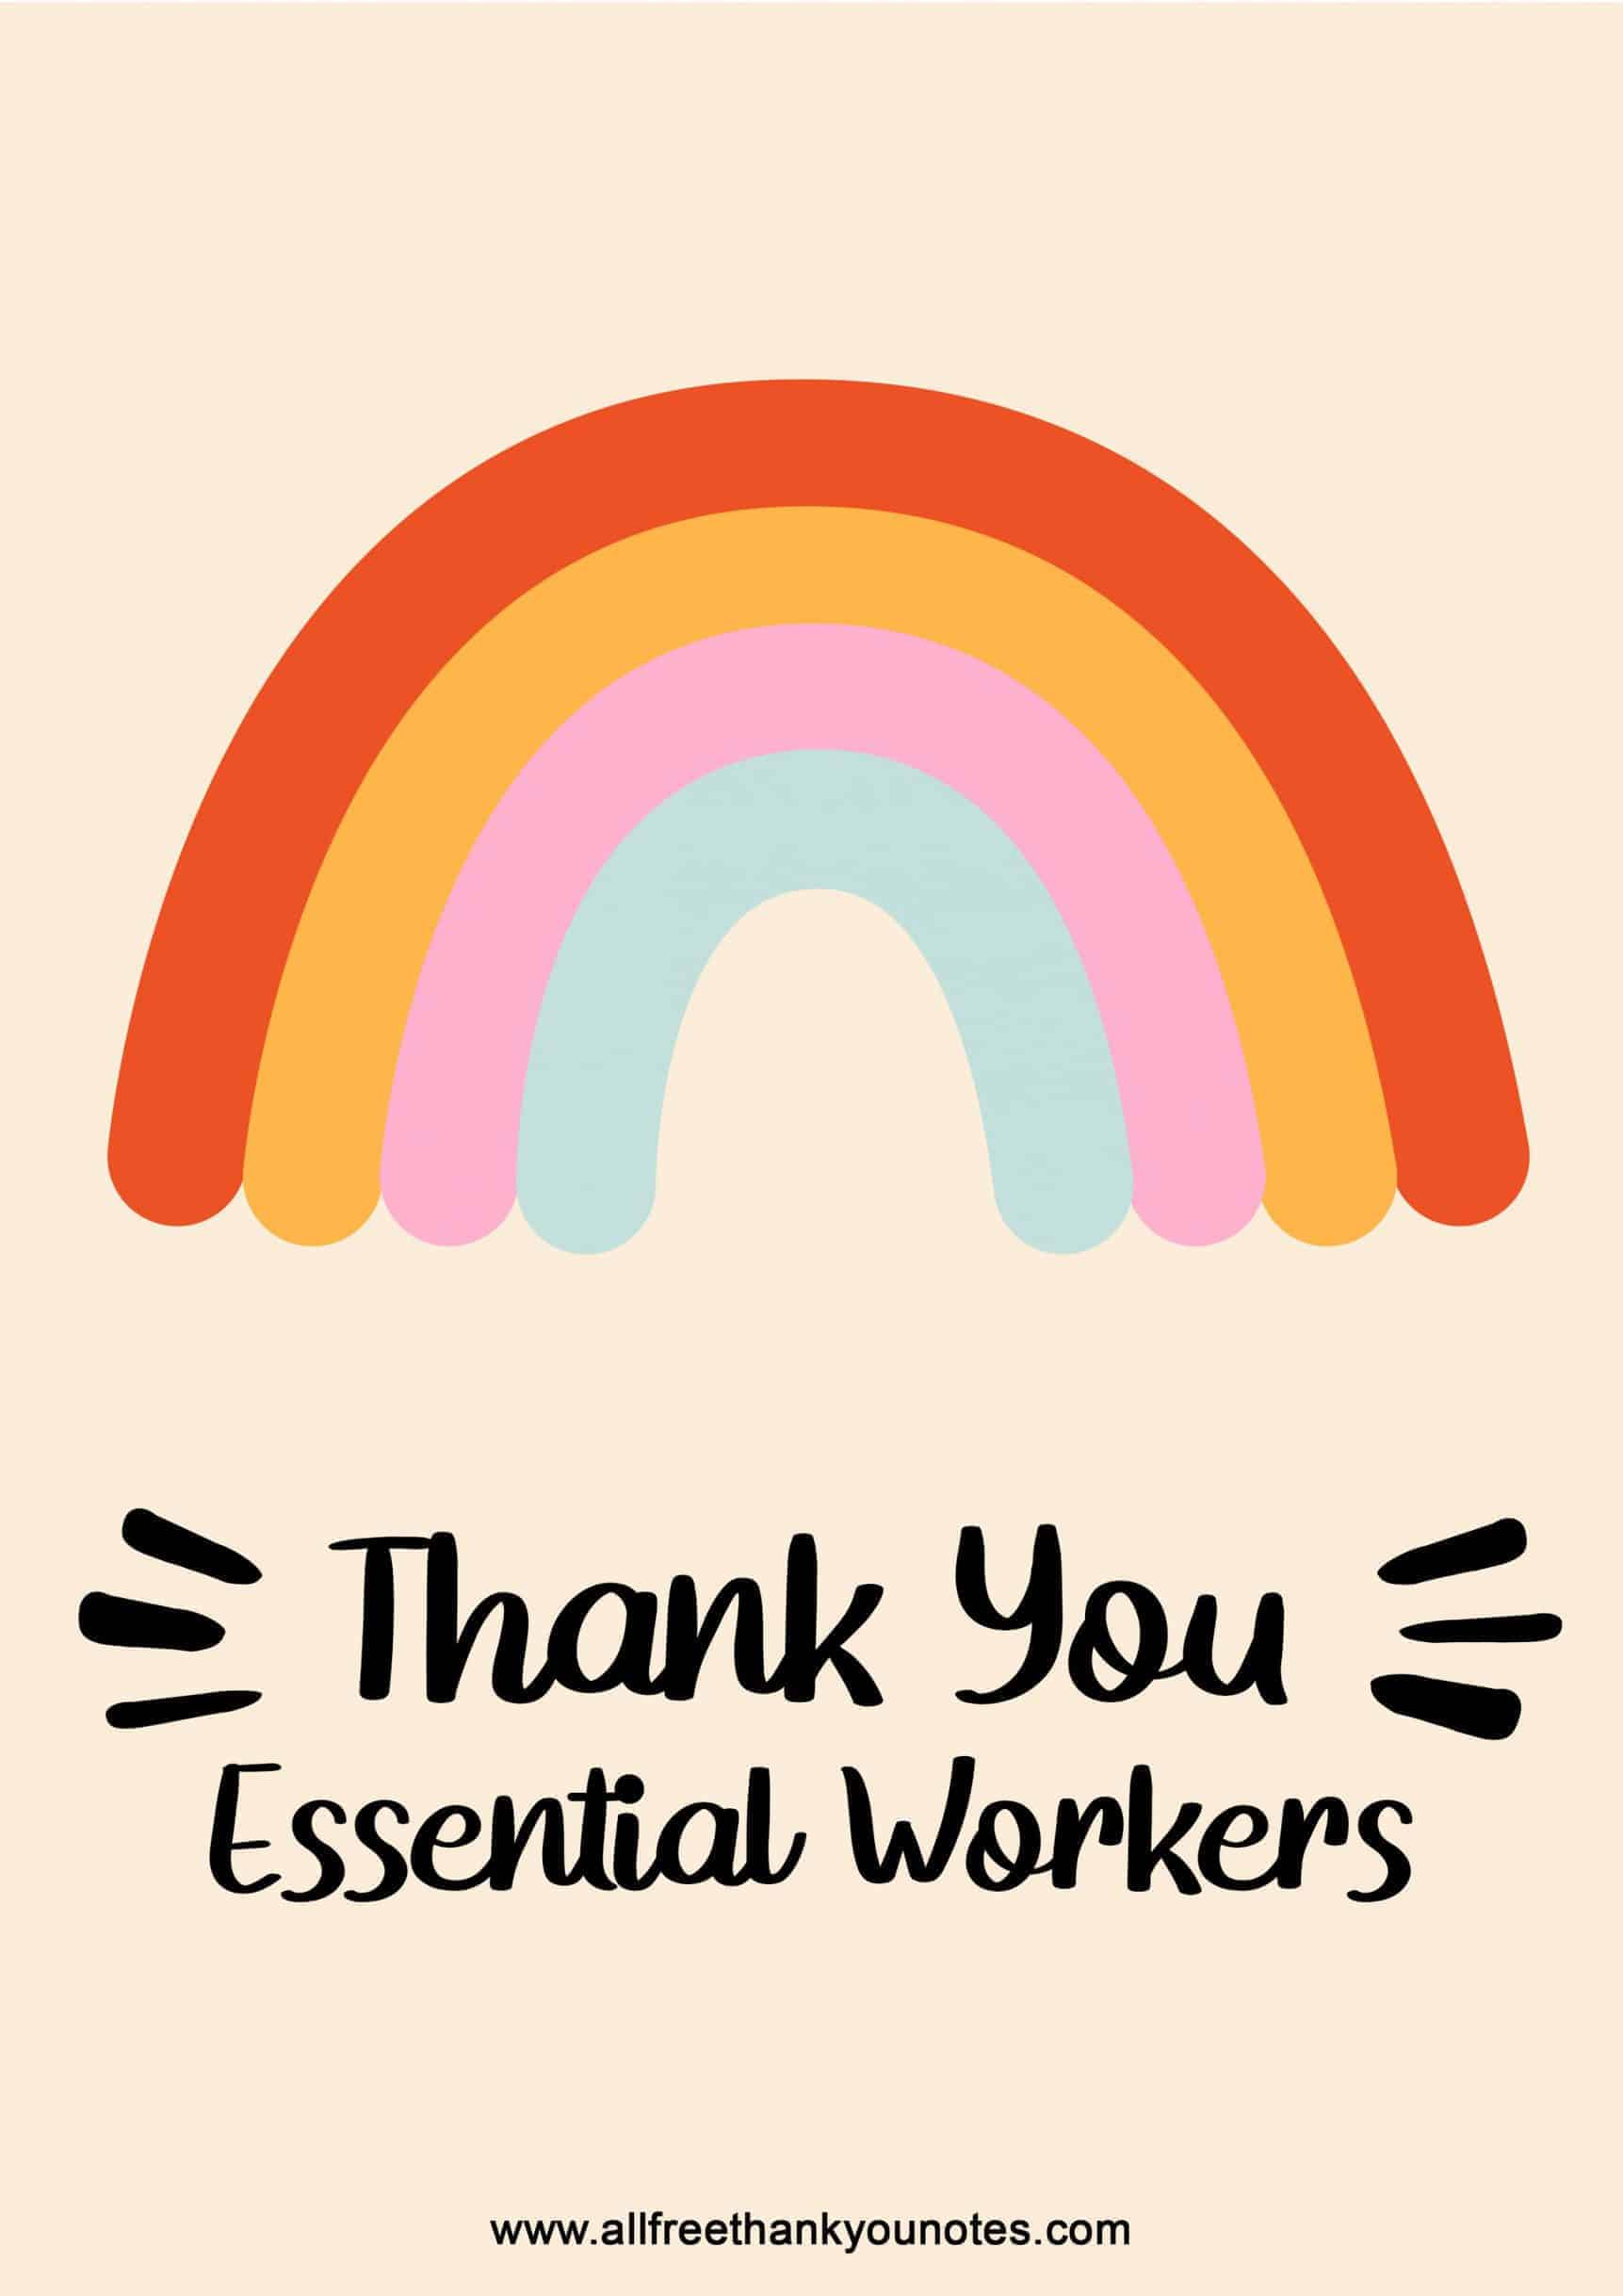 Thank you essential workers rainbow cute design